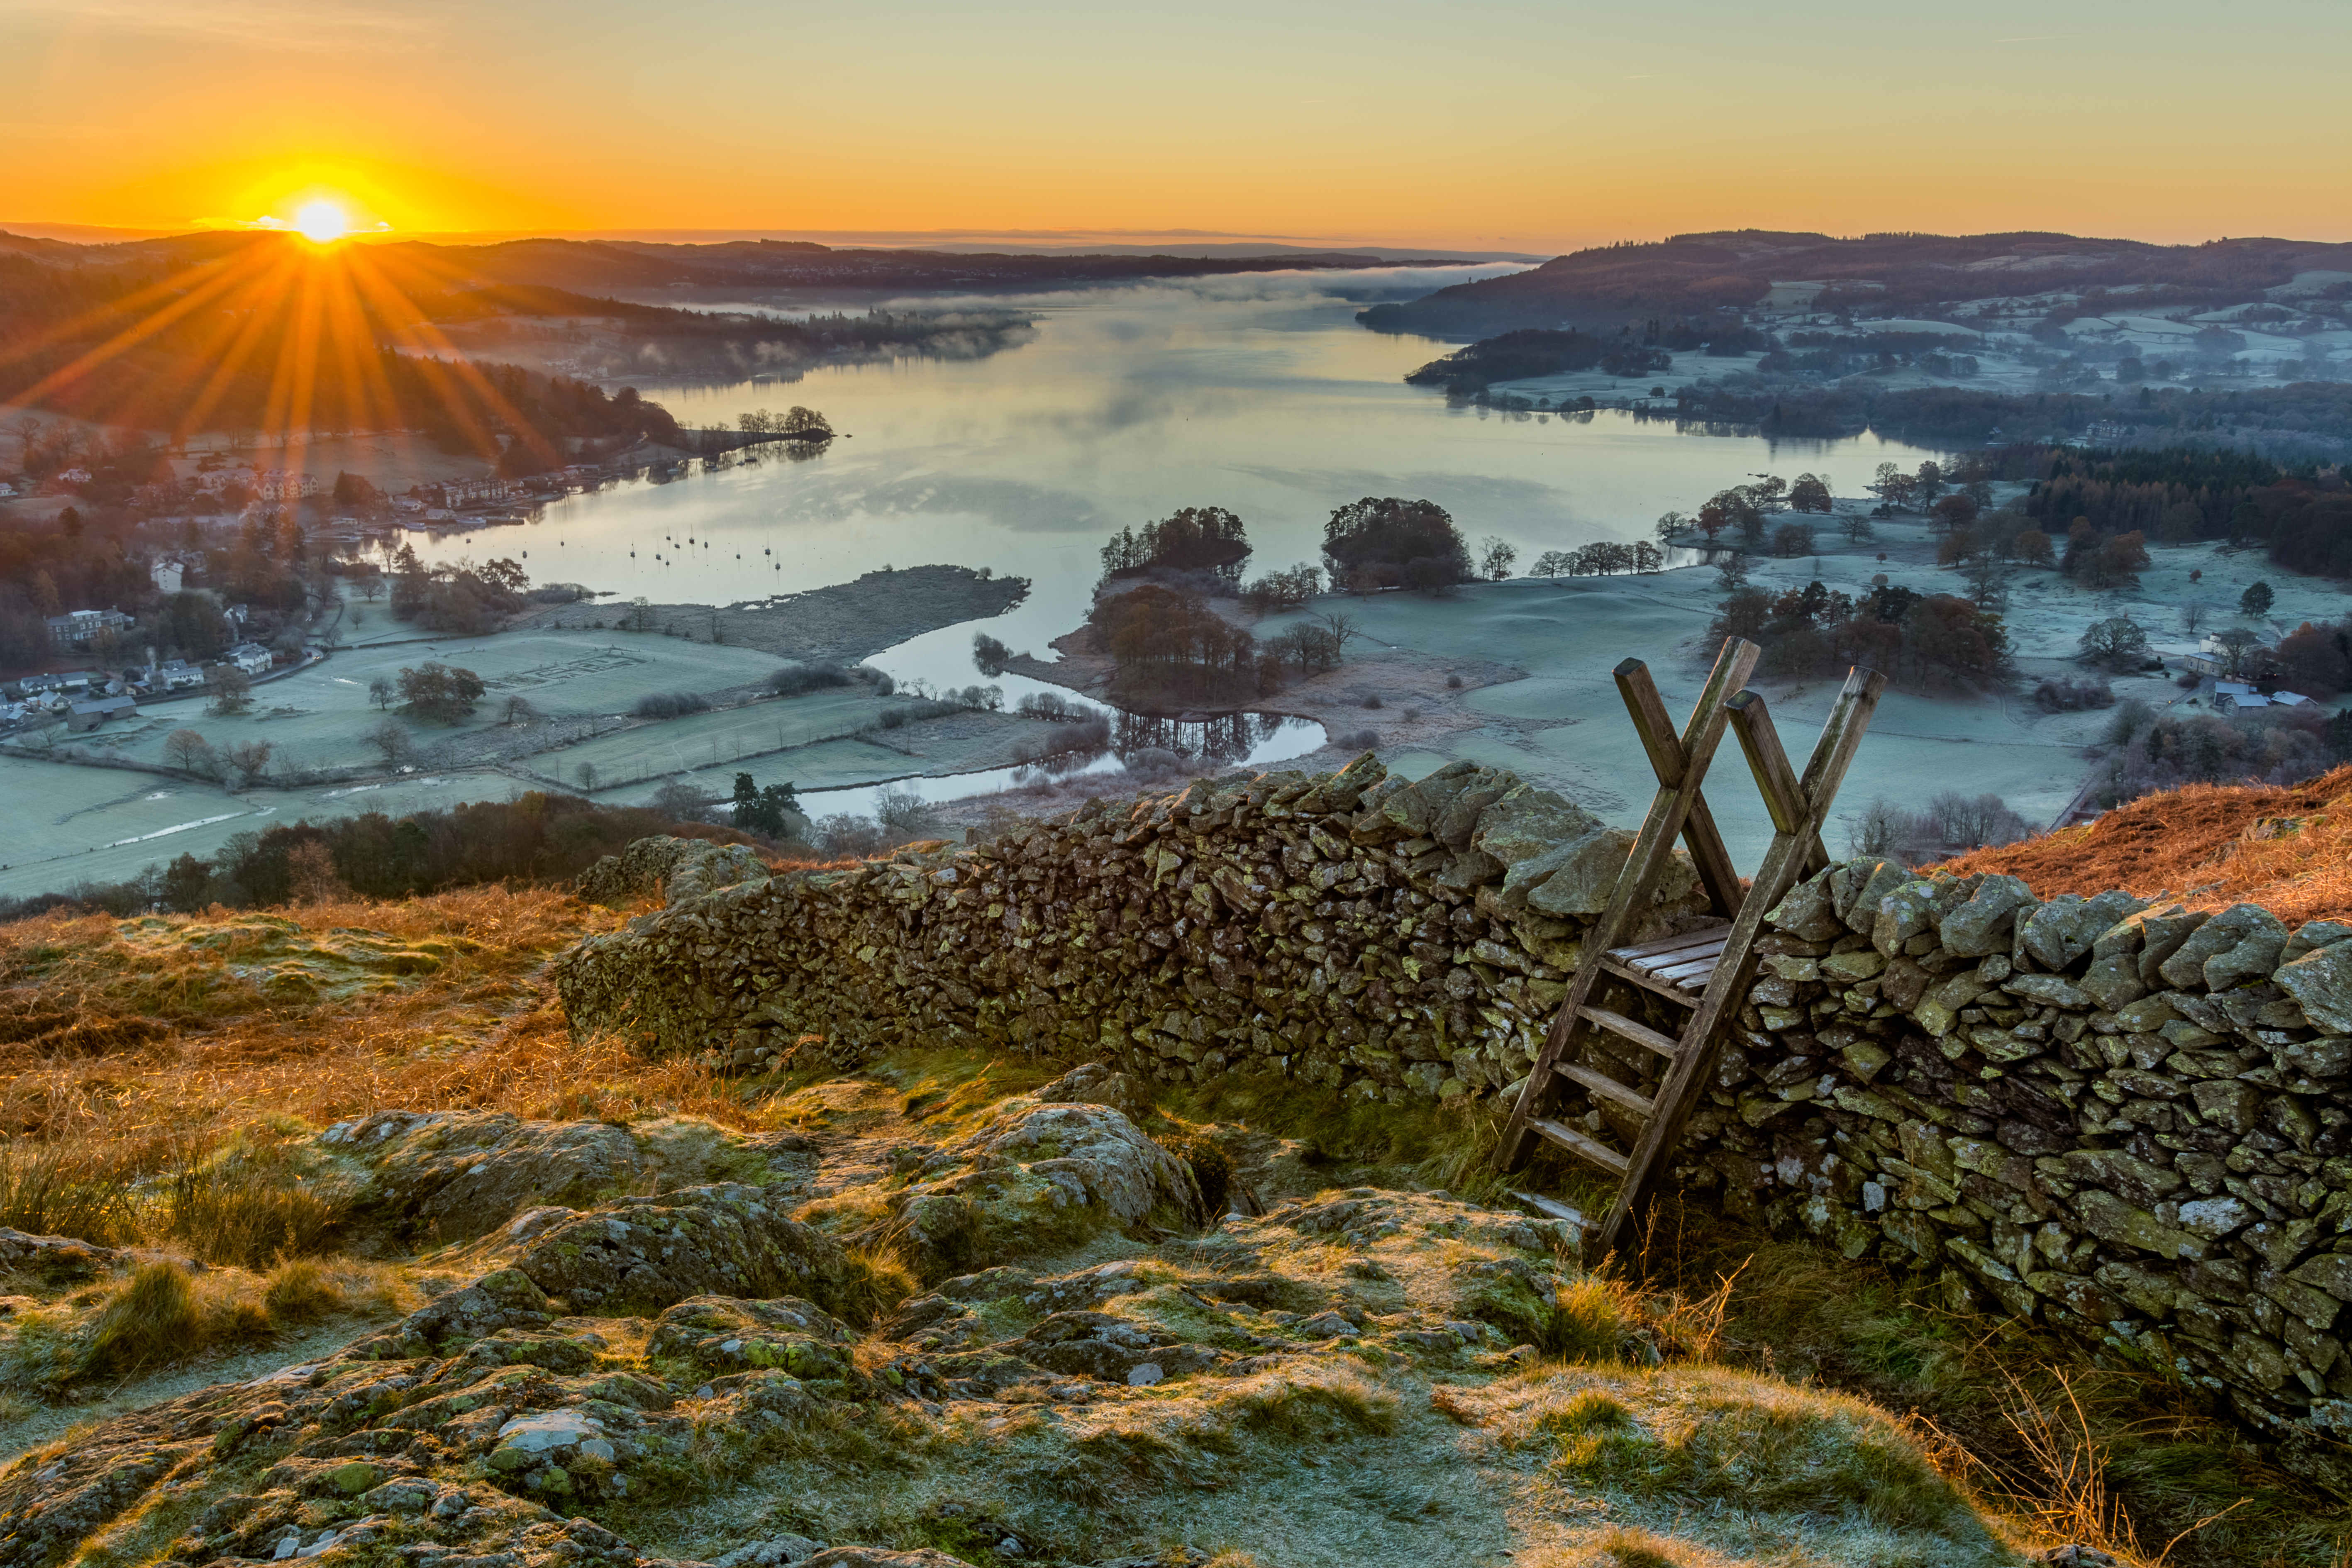 Wooden stile and stone wall with Lake Windermere in background with sun rising above horizon.